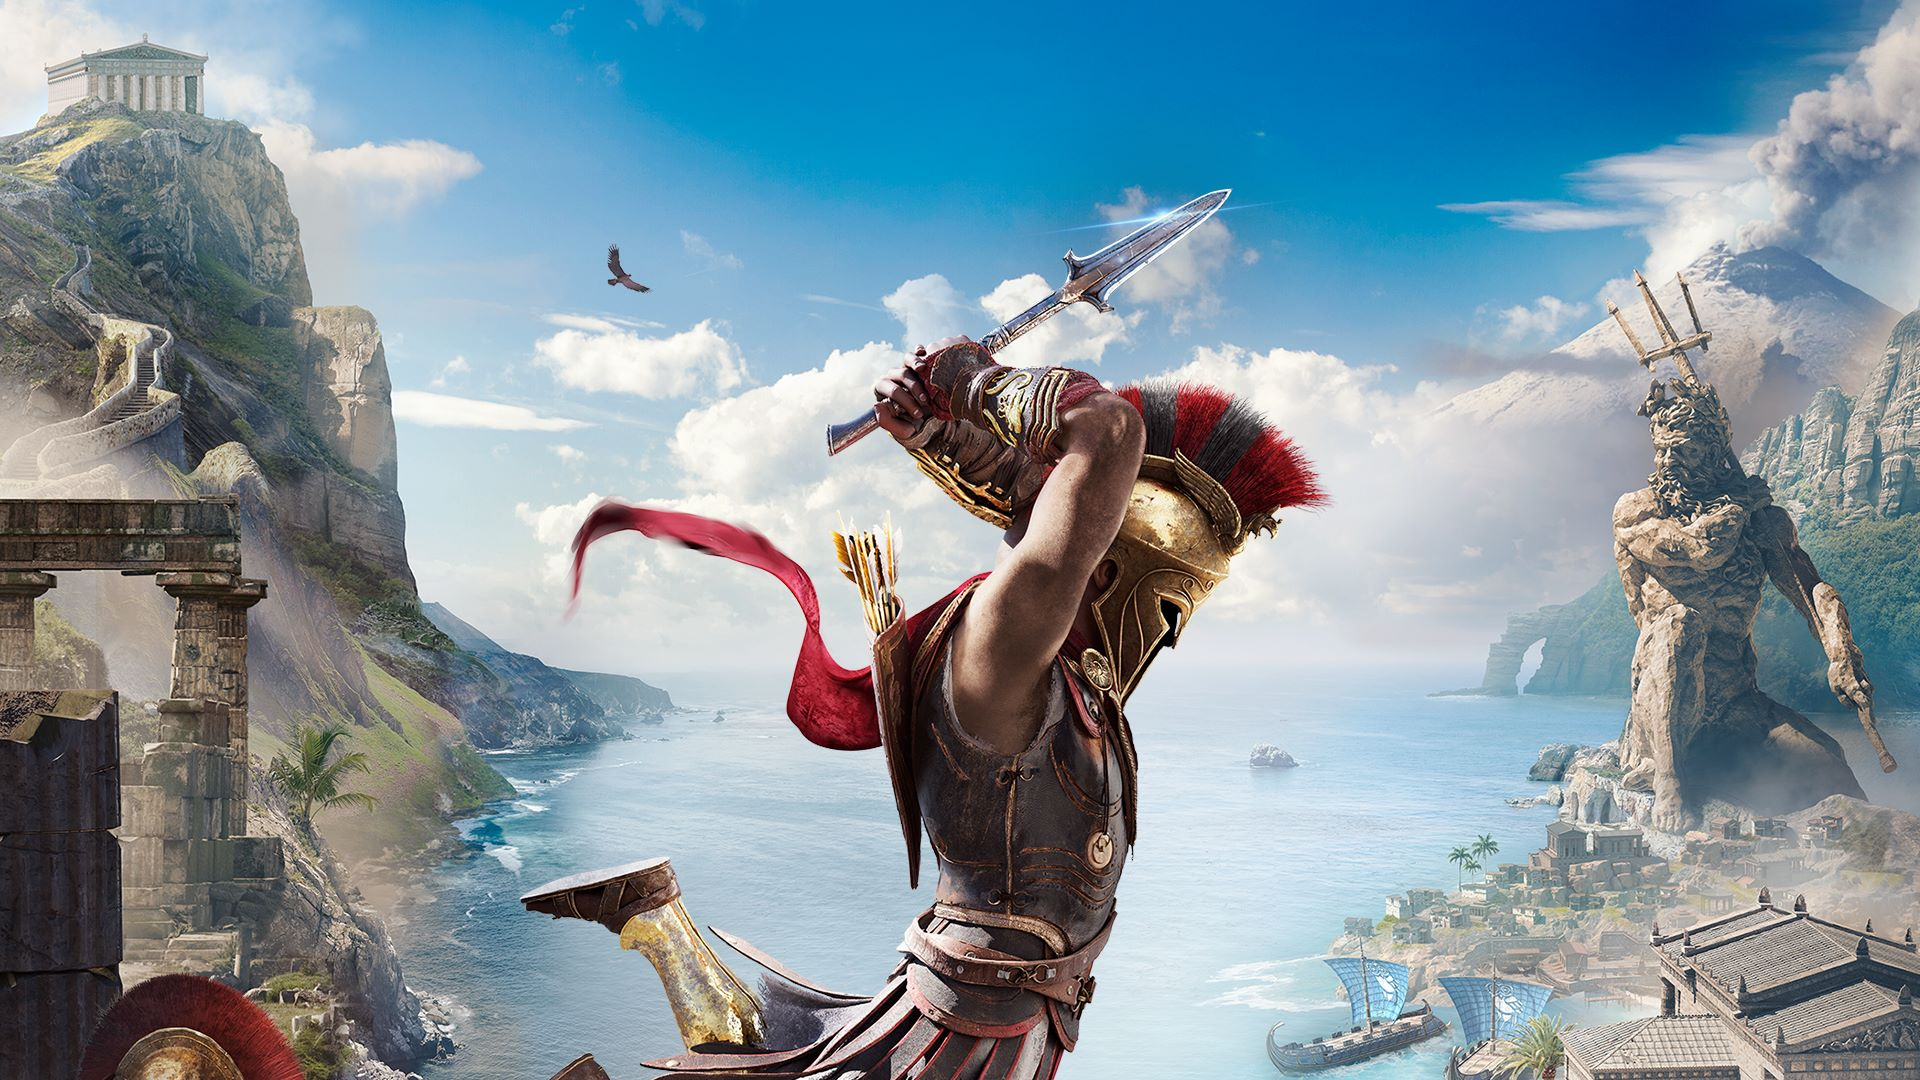 Assassin S Creed Odyssey 4k Resolution Limit Revealed For Ps4 Pro And Xbox One X